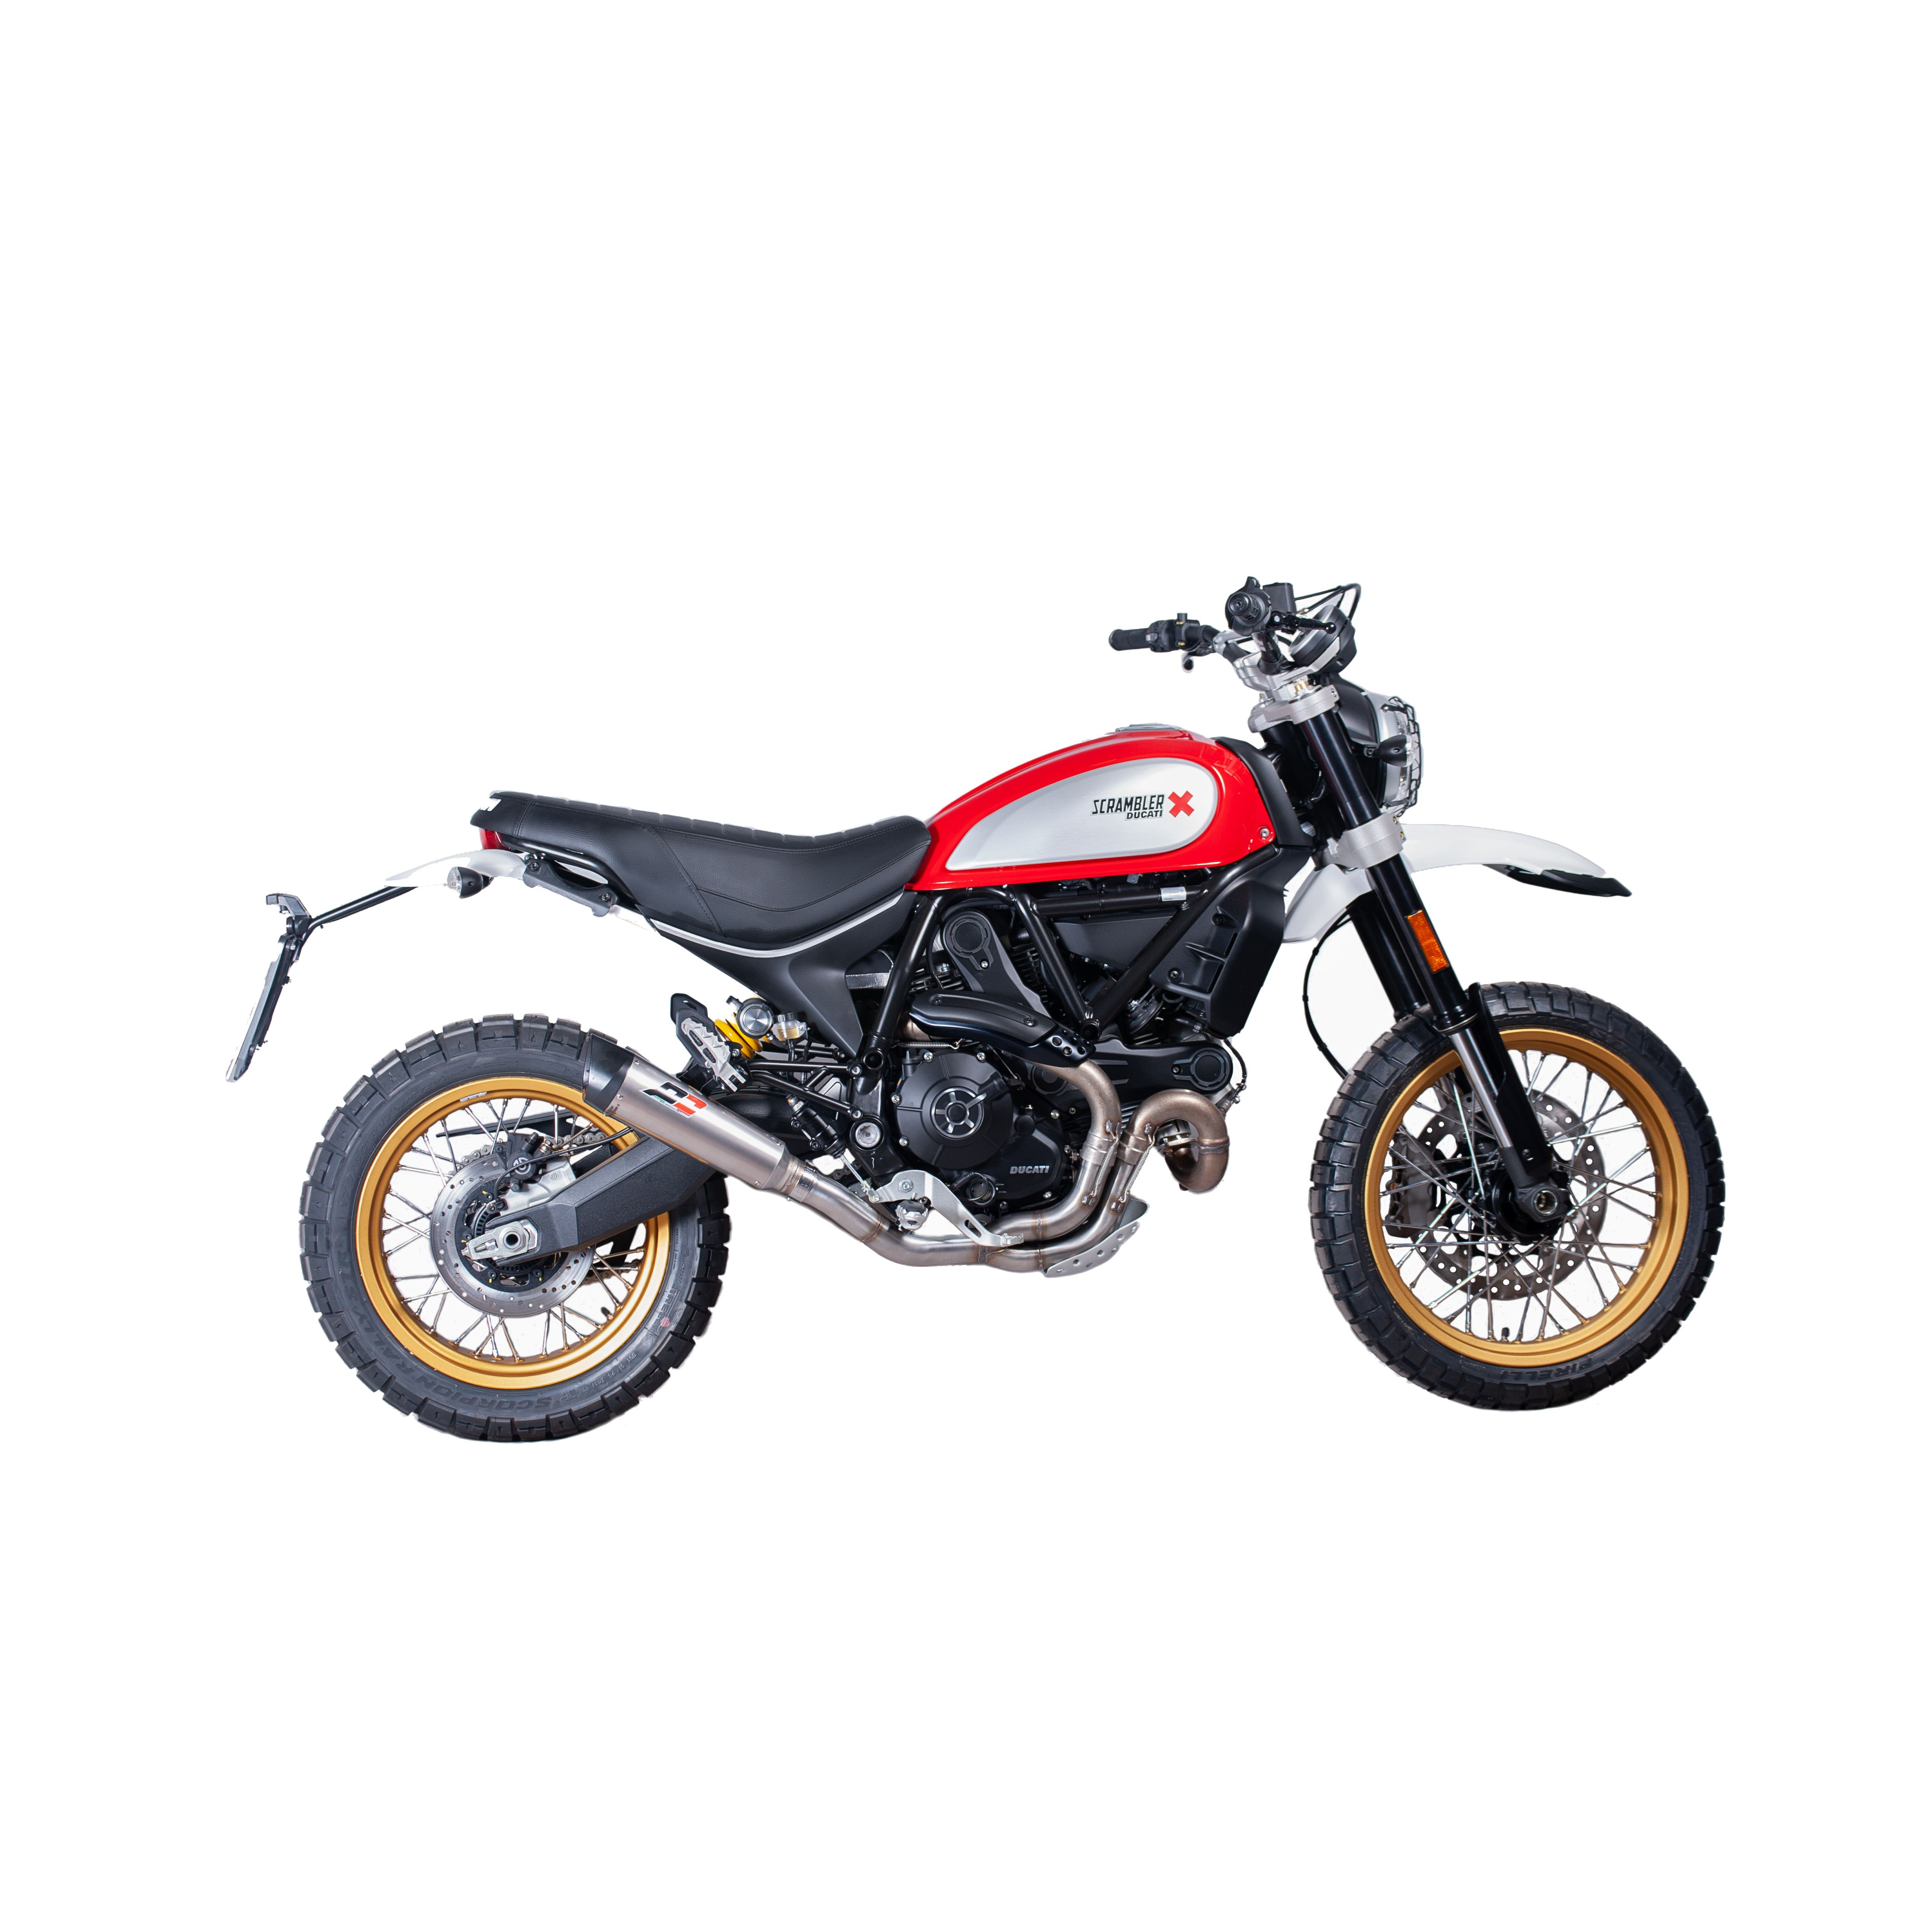 parts ducati scrambler exhaust qd ducati scrambler 800 desert sled titanium tri cone. Black Bedroom Furniture Sets. Home Design Ideas